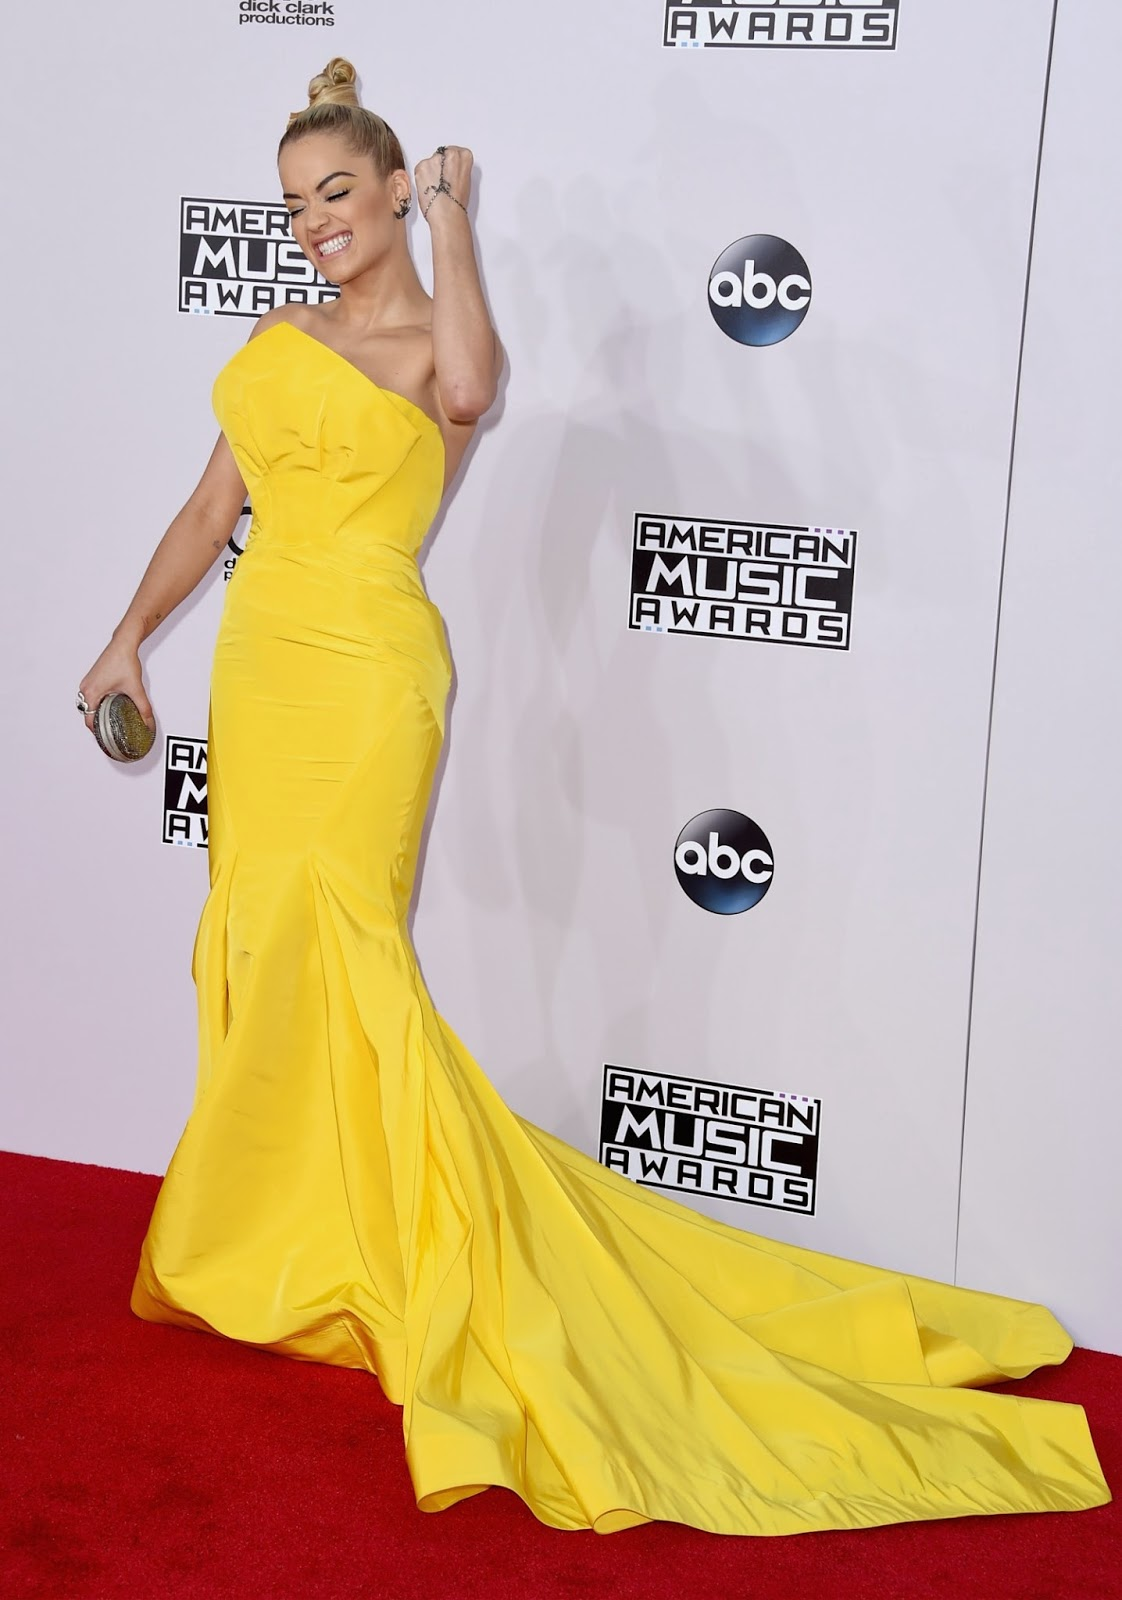 Rita Ora wears a bright yellow Zac Posen gown to the 2014 American Music Awards